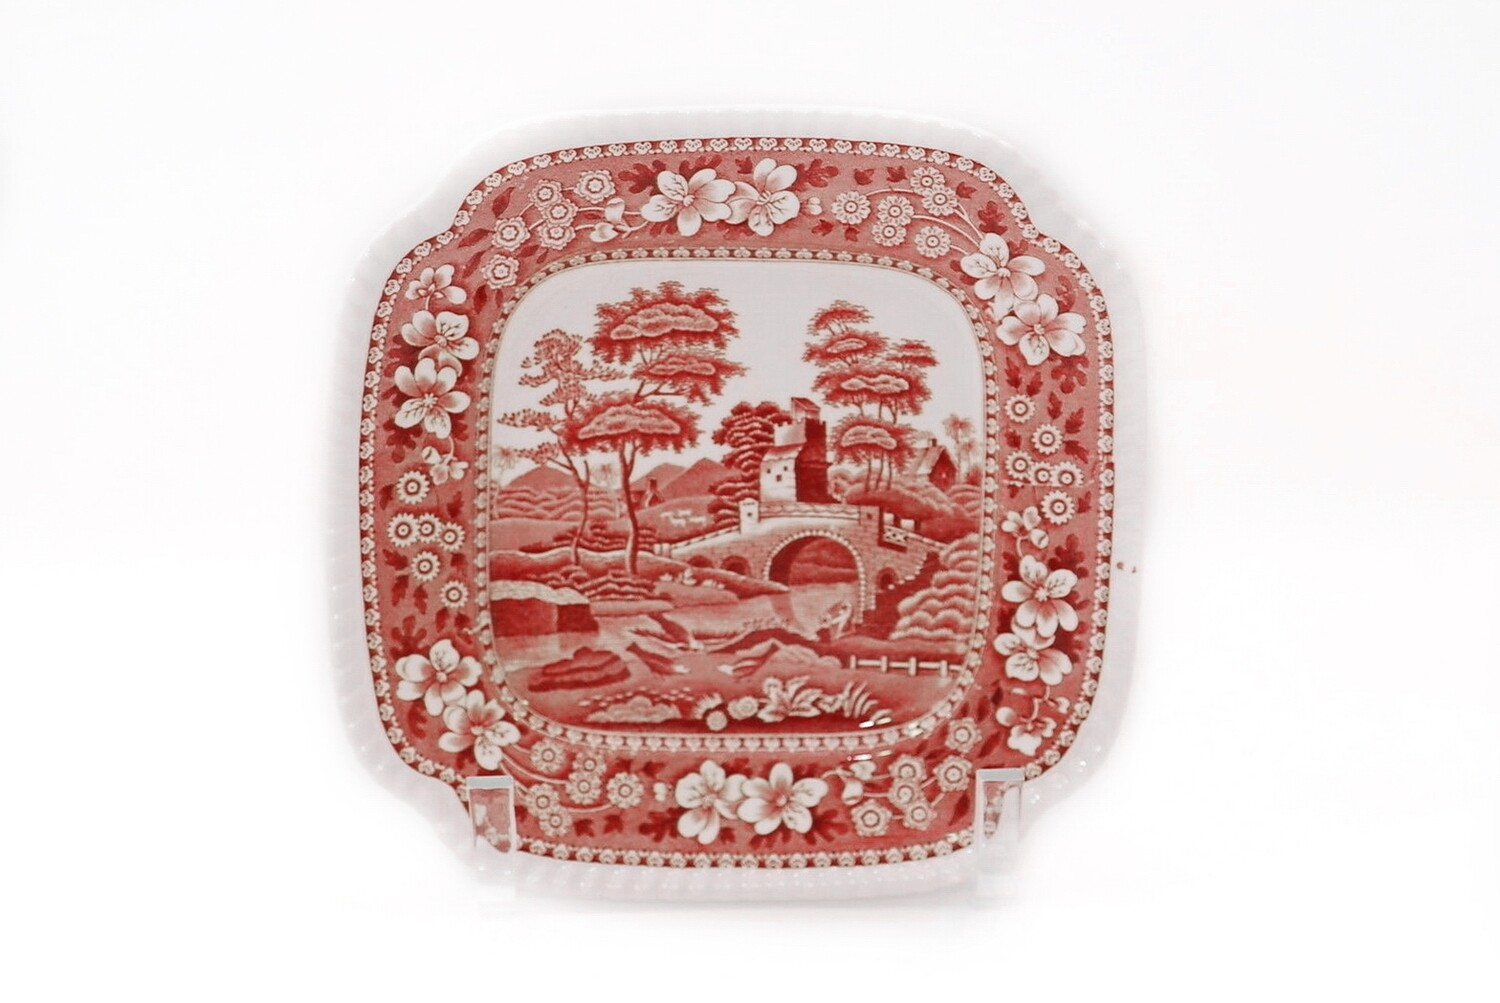 8 Spode Pink Tower 8 1/4 Inch Square Plates Gadroon Rimmed Pink Transferware